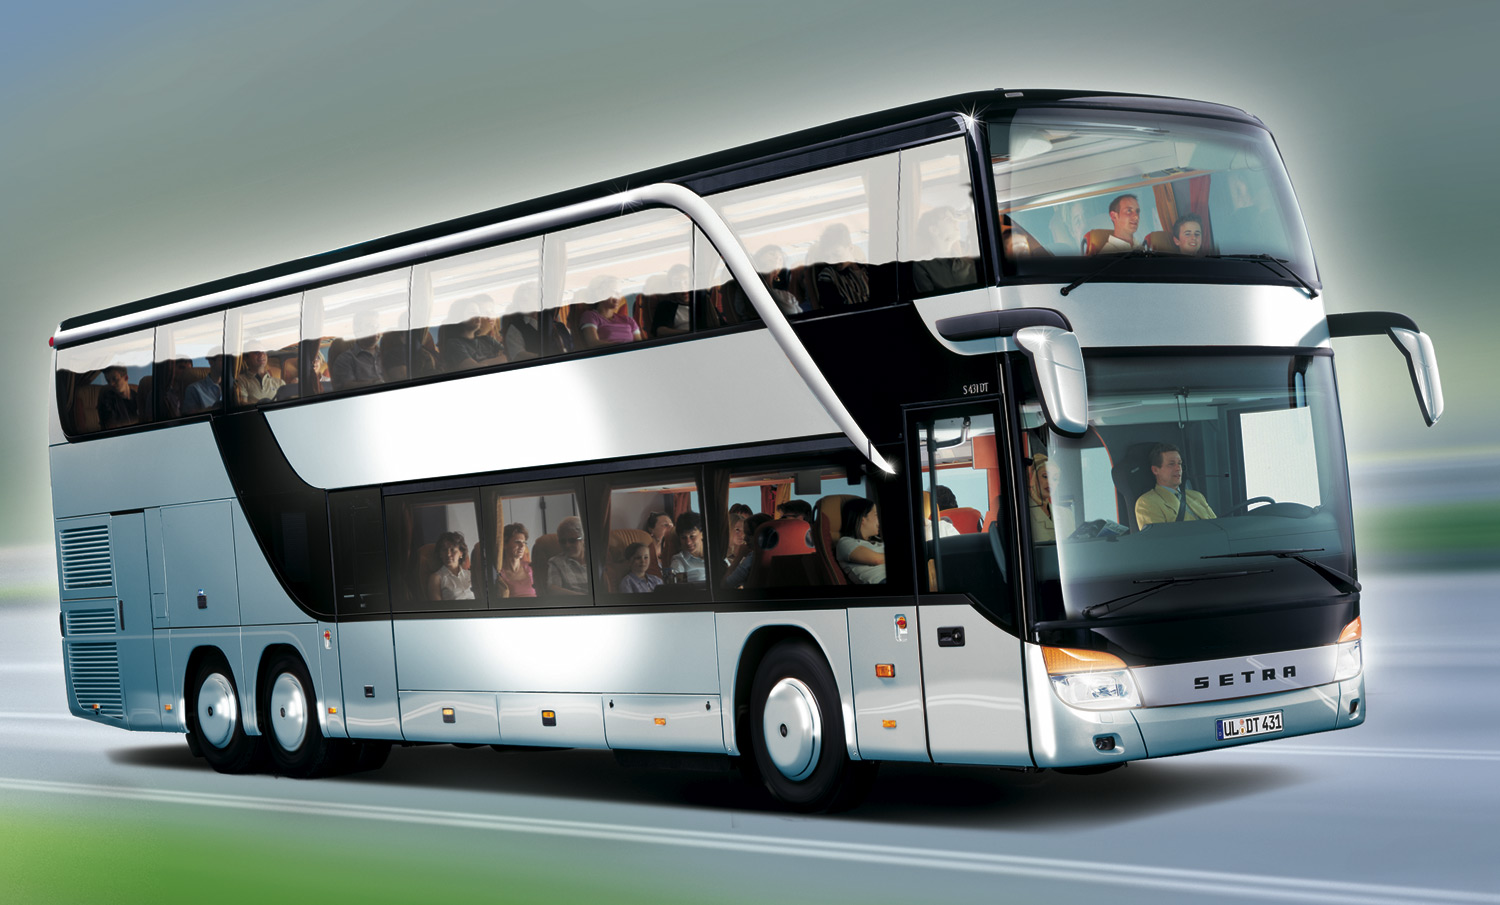 Setra S 431 Photos Photogallery With 1 Pics Carsbase Com